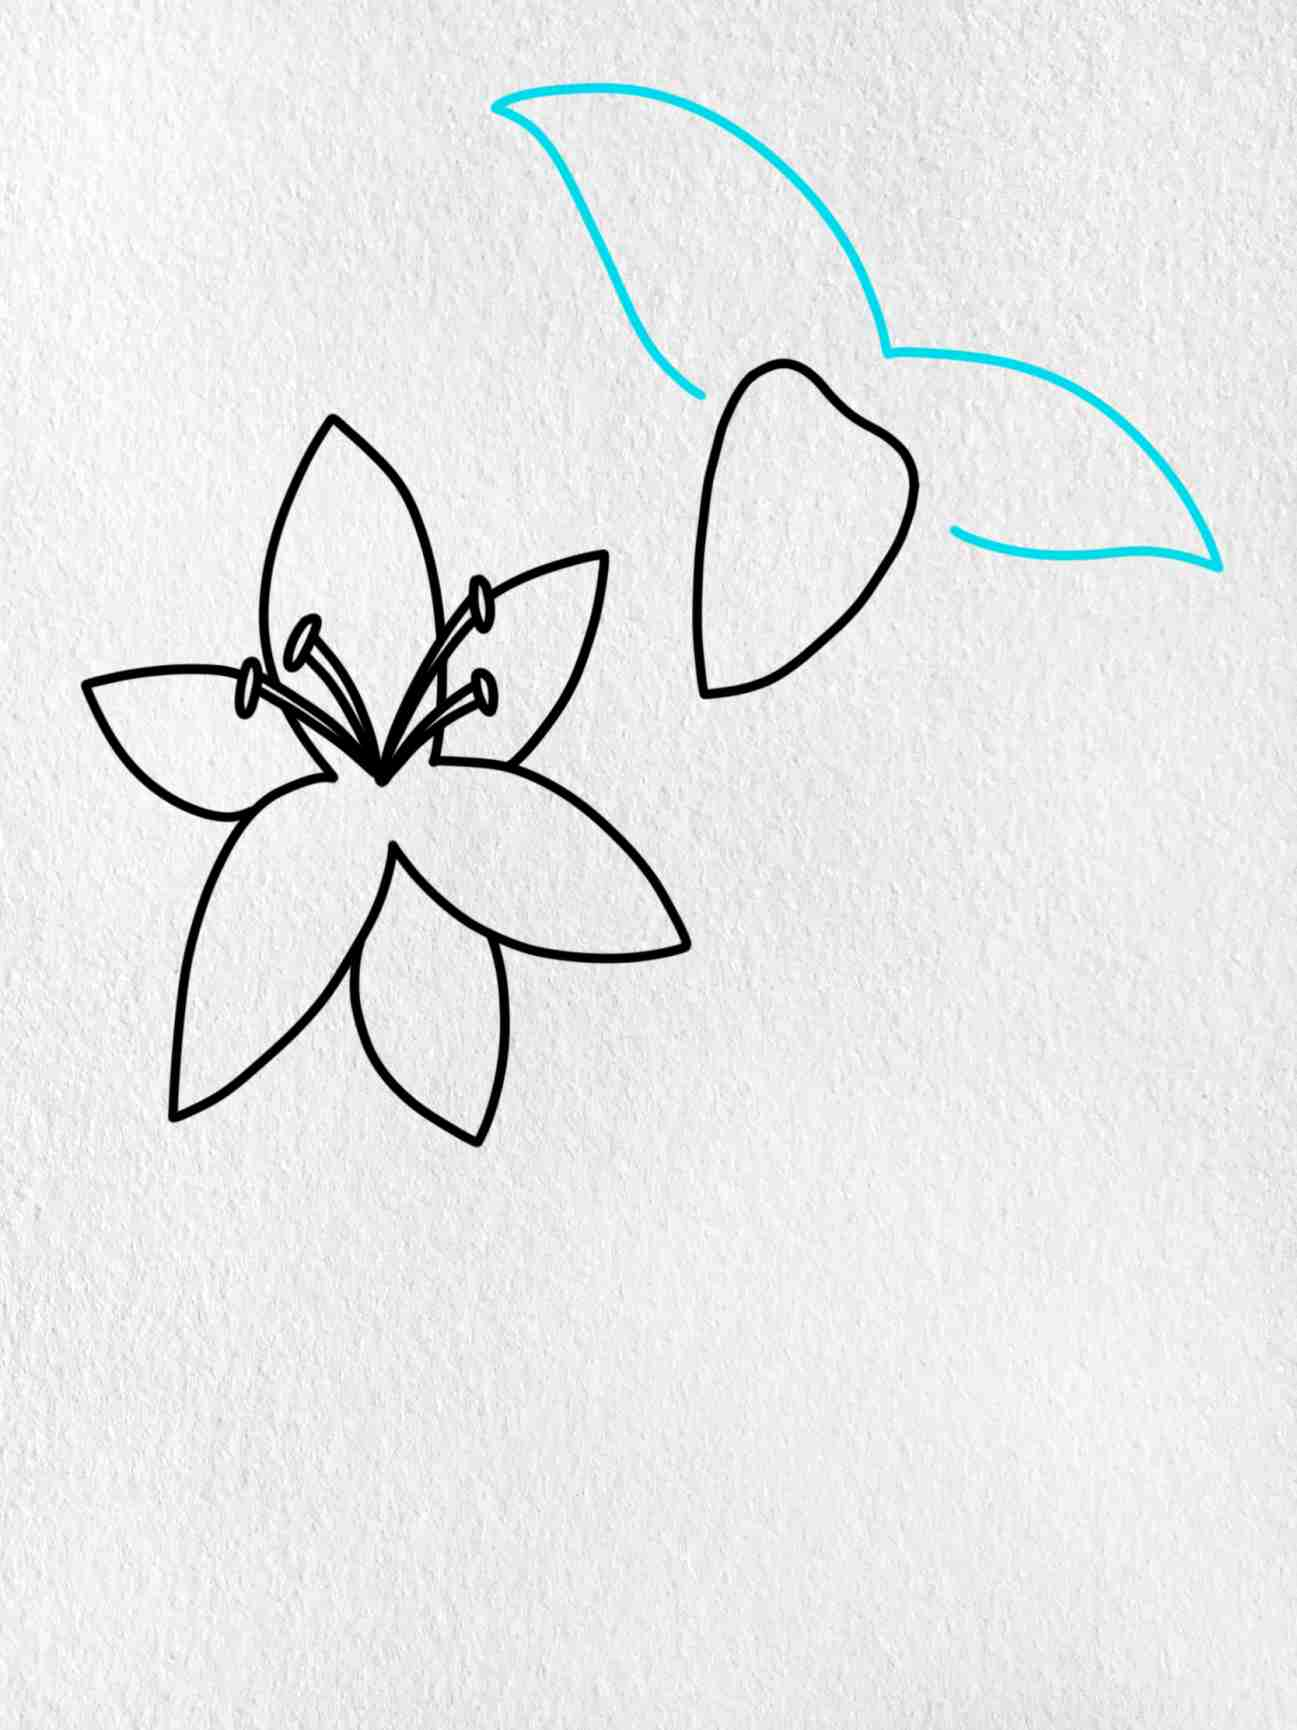 How To Draw A Lily: Step 4